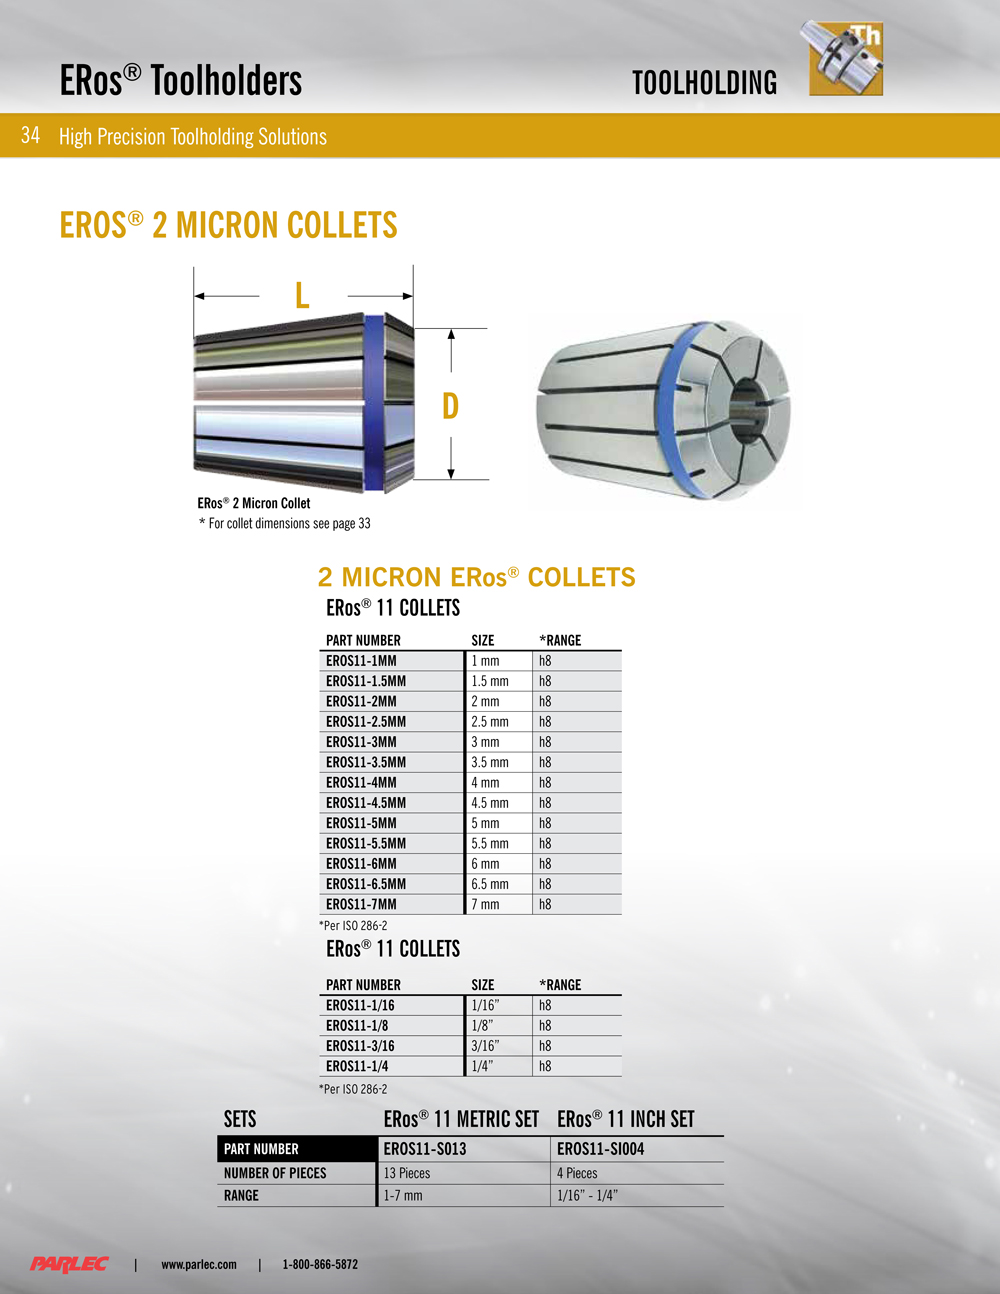 ERos®11 Precision Collet (2 micron) 4mm H10 (on size) Collapsed ...